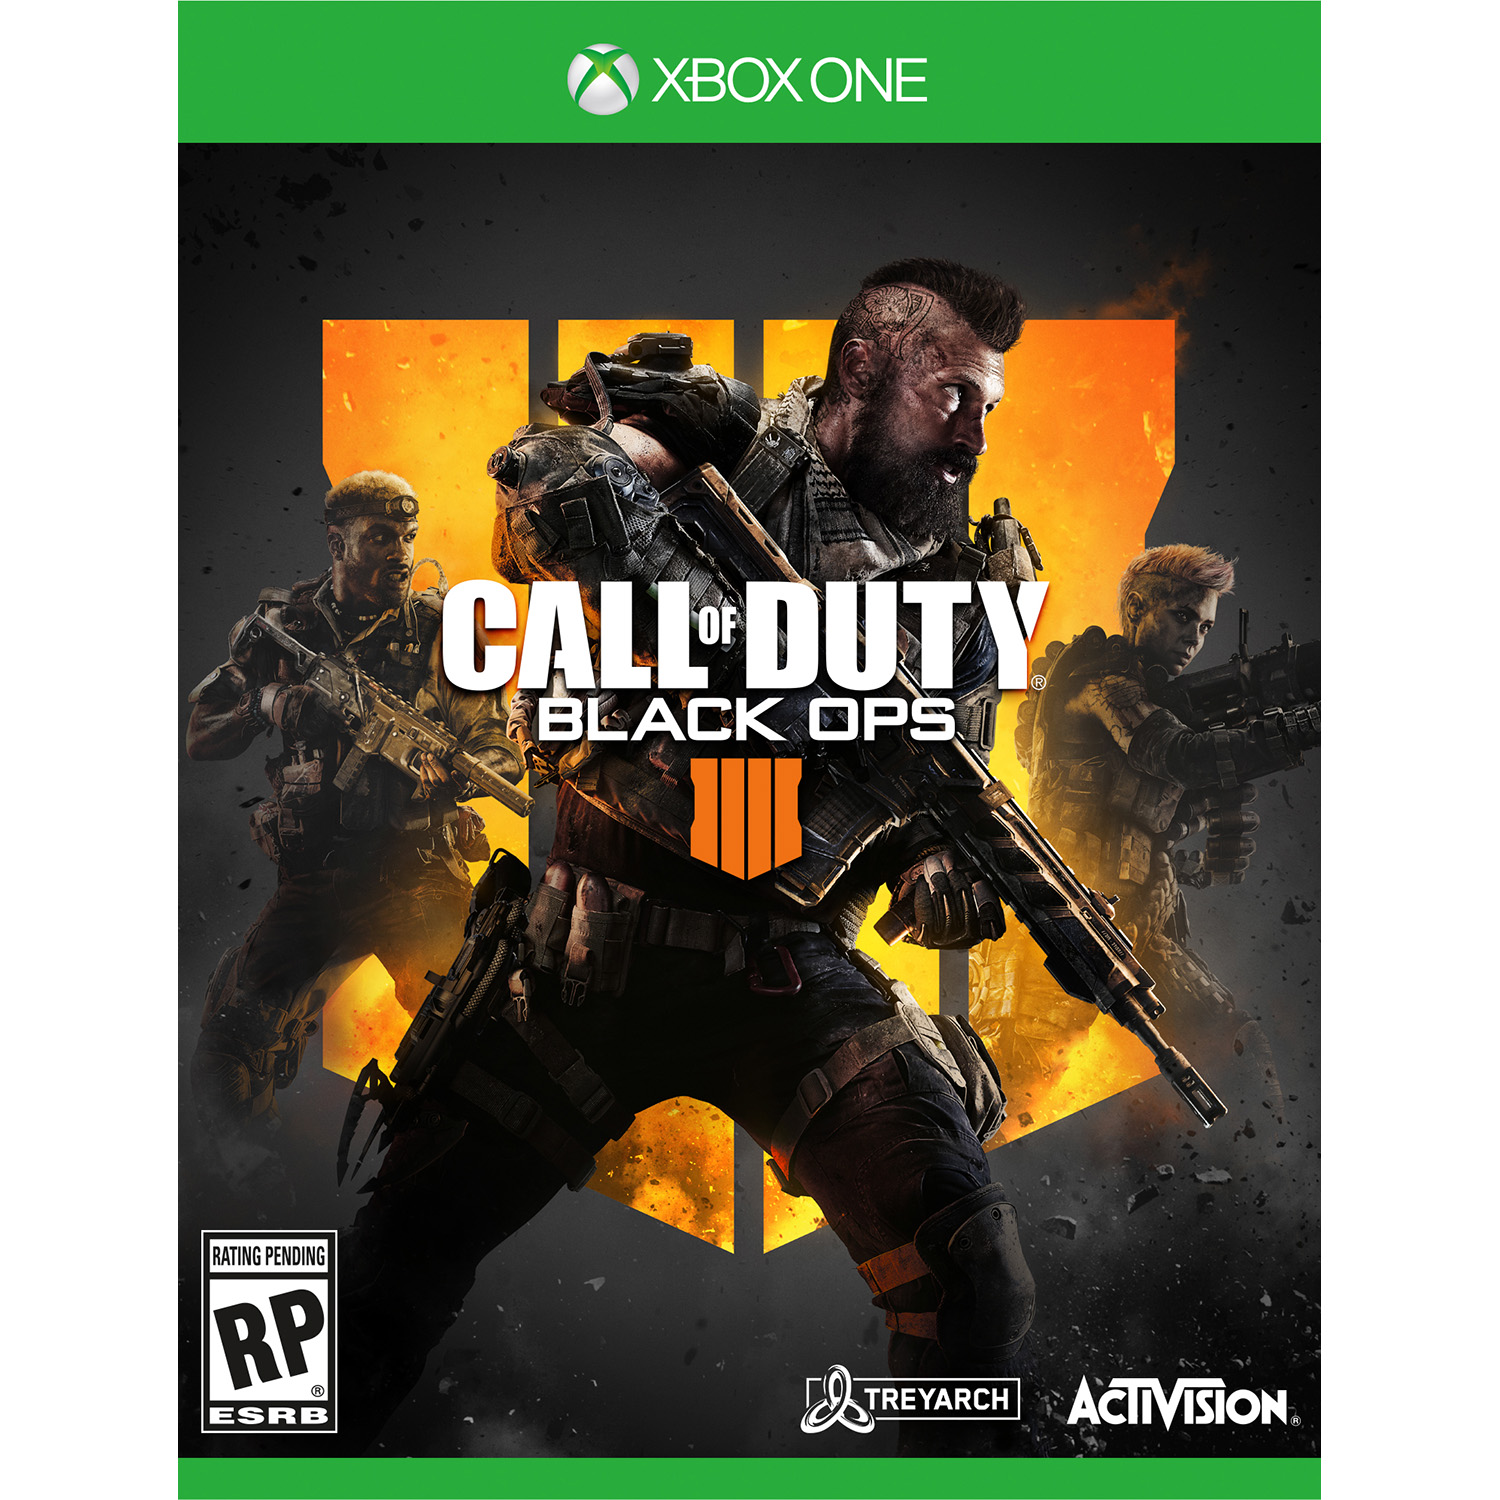 Call of Duty: Black Ops 4, Activision, Xbox One, REFURBISHED/PREOWNED